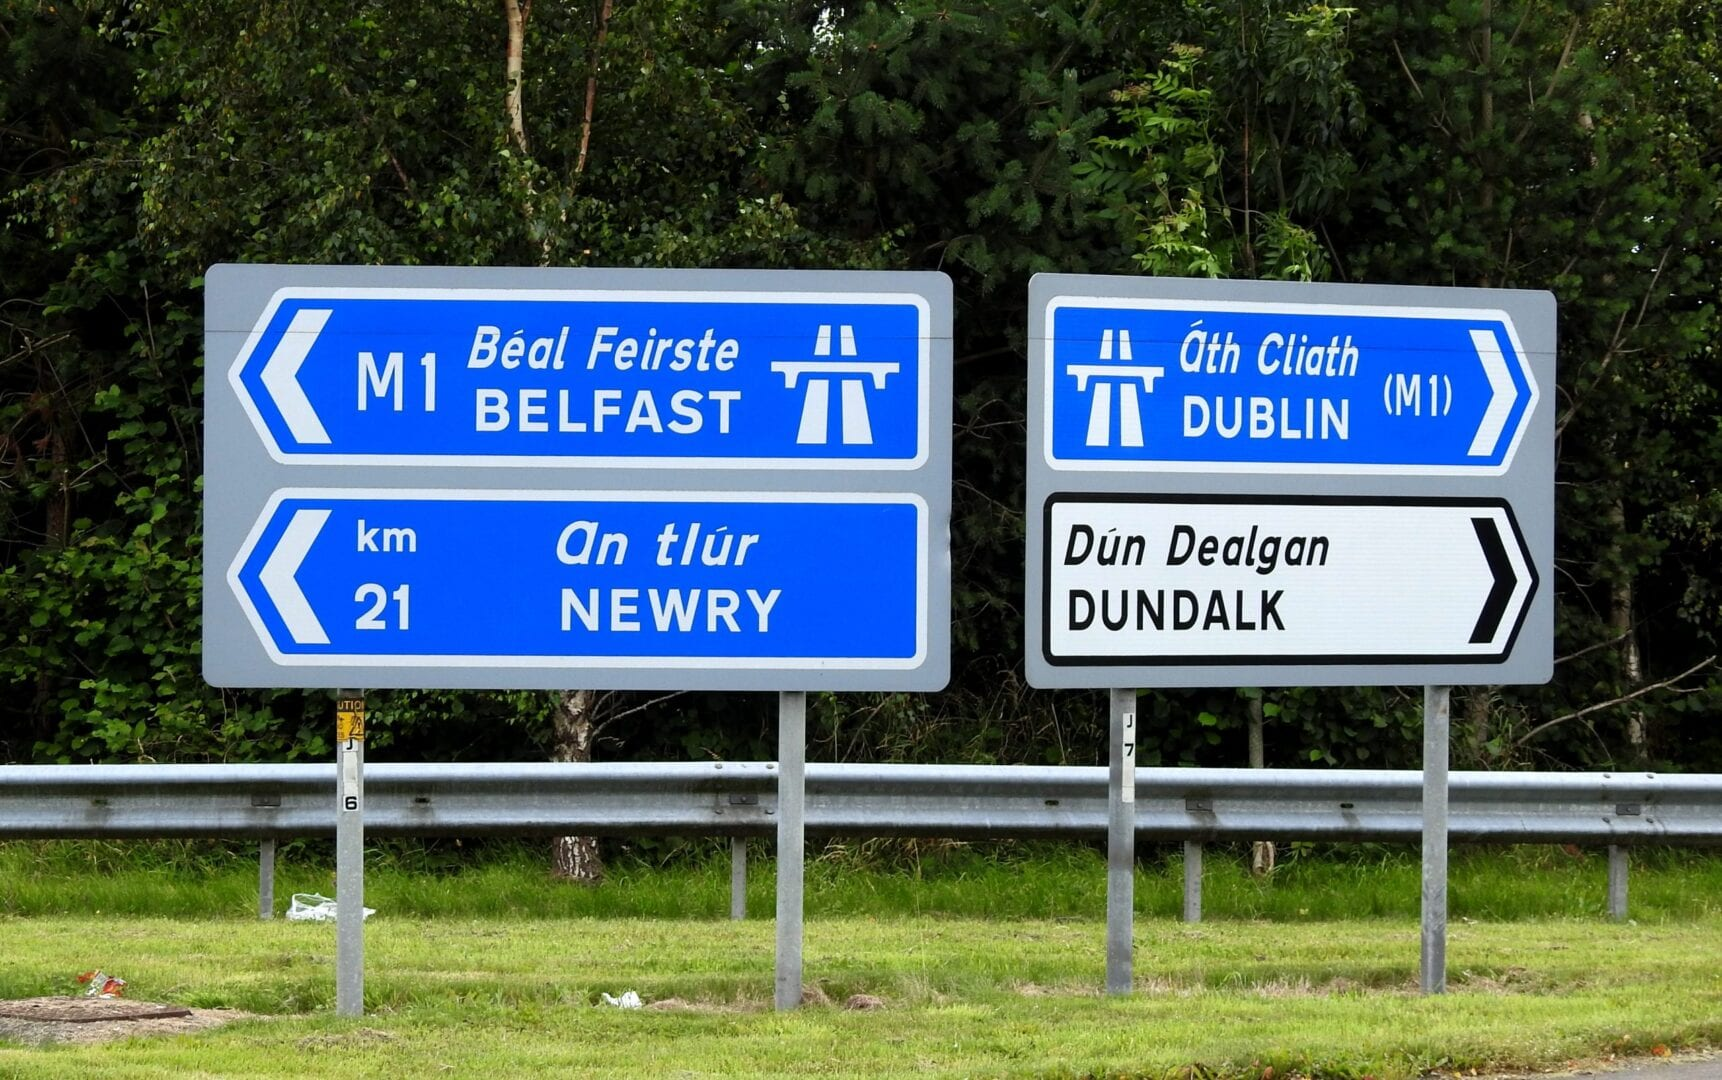 sign post for belfast, newry and dundalk, dublin for green card